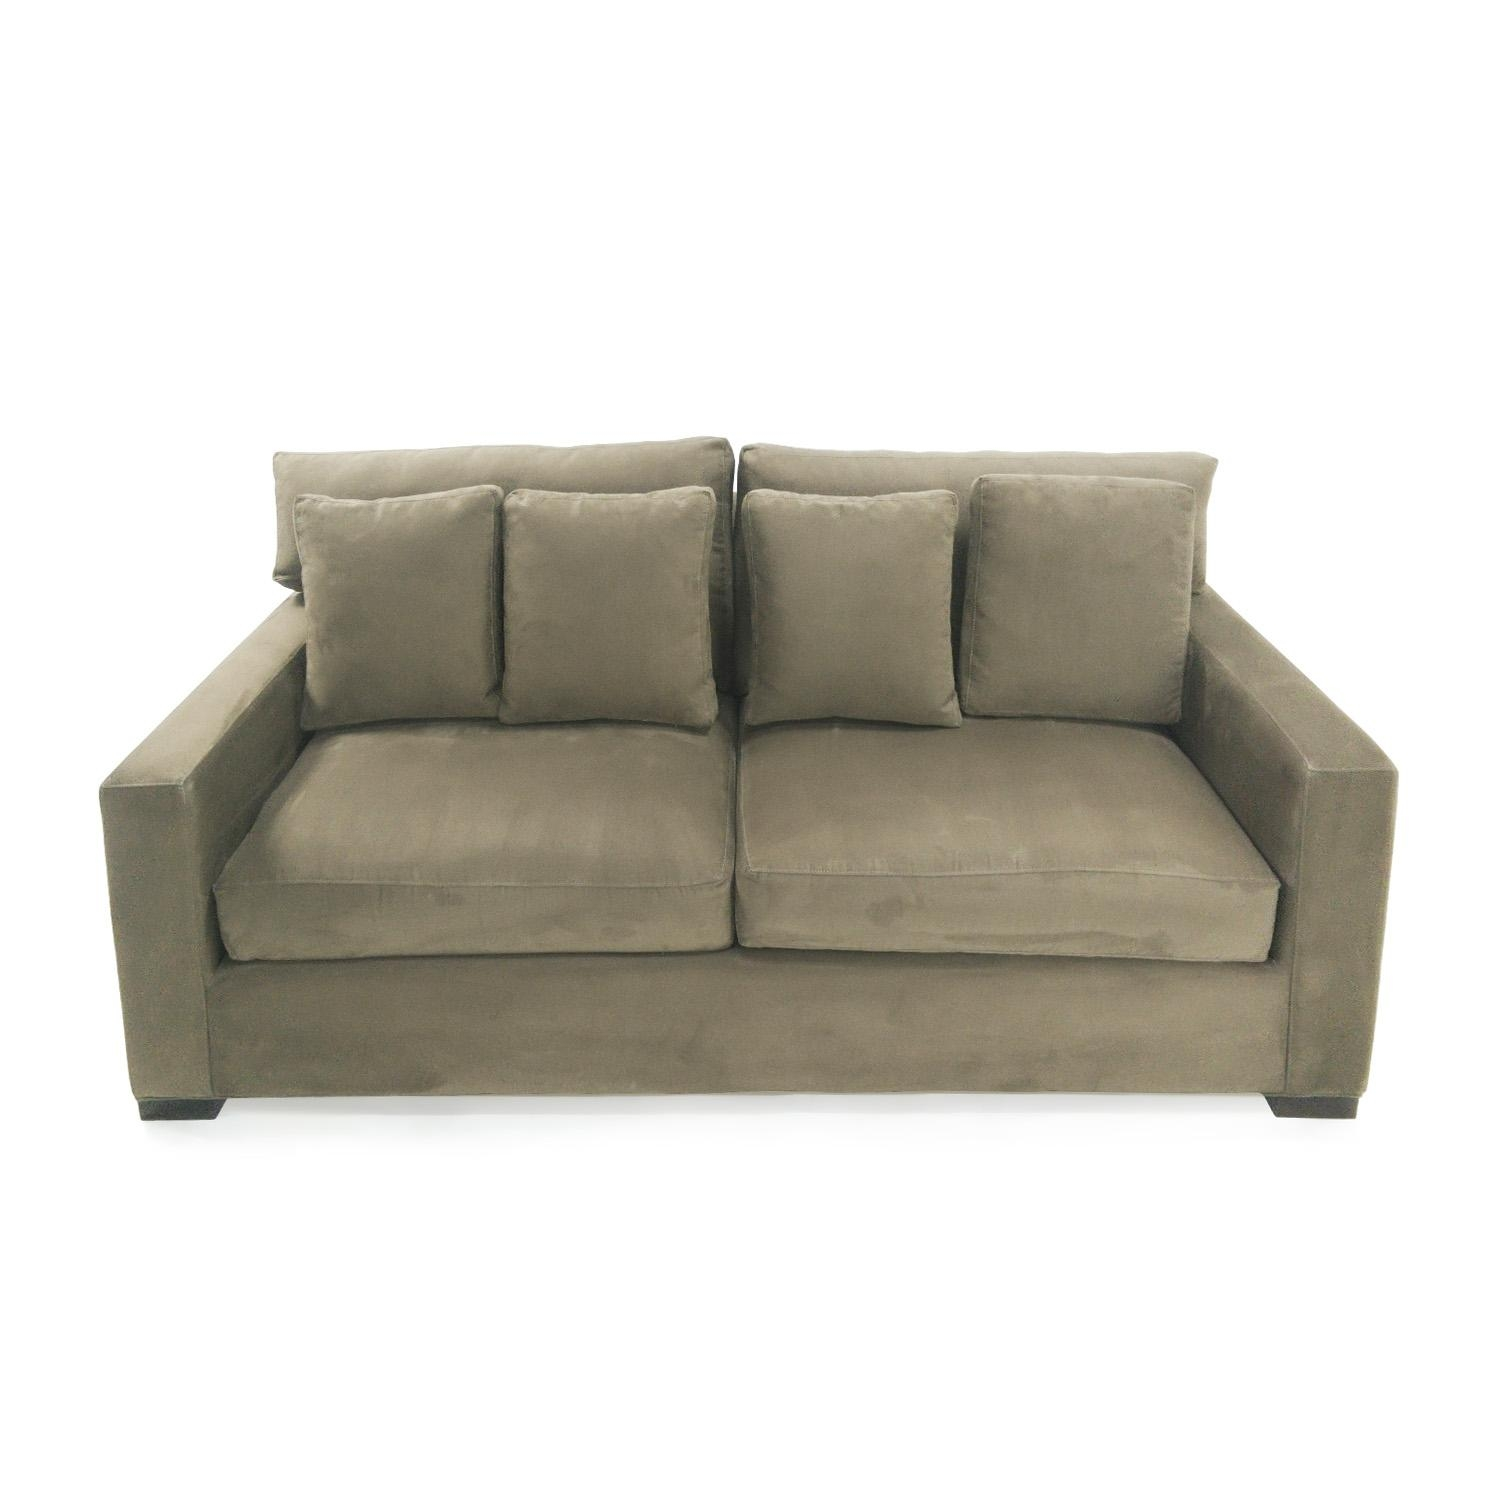 72% Off - Crate And Barrel Crate & Barrel Axis Ii Seat Sofa / Sofas pertaining to Antoinette Fainting Sofas